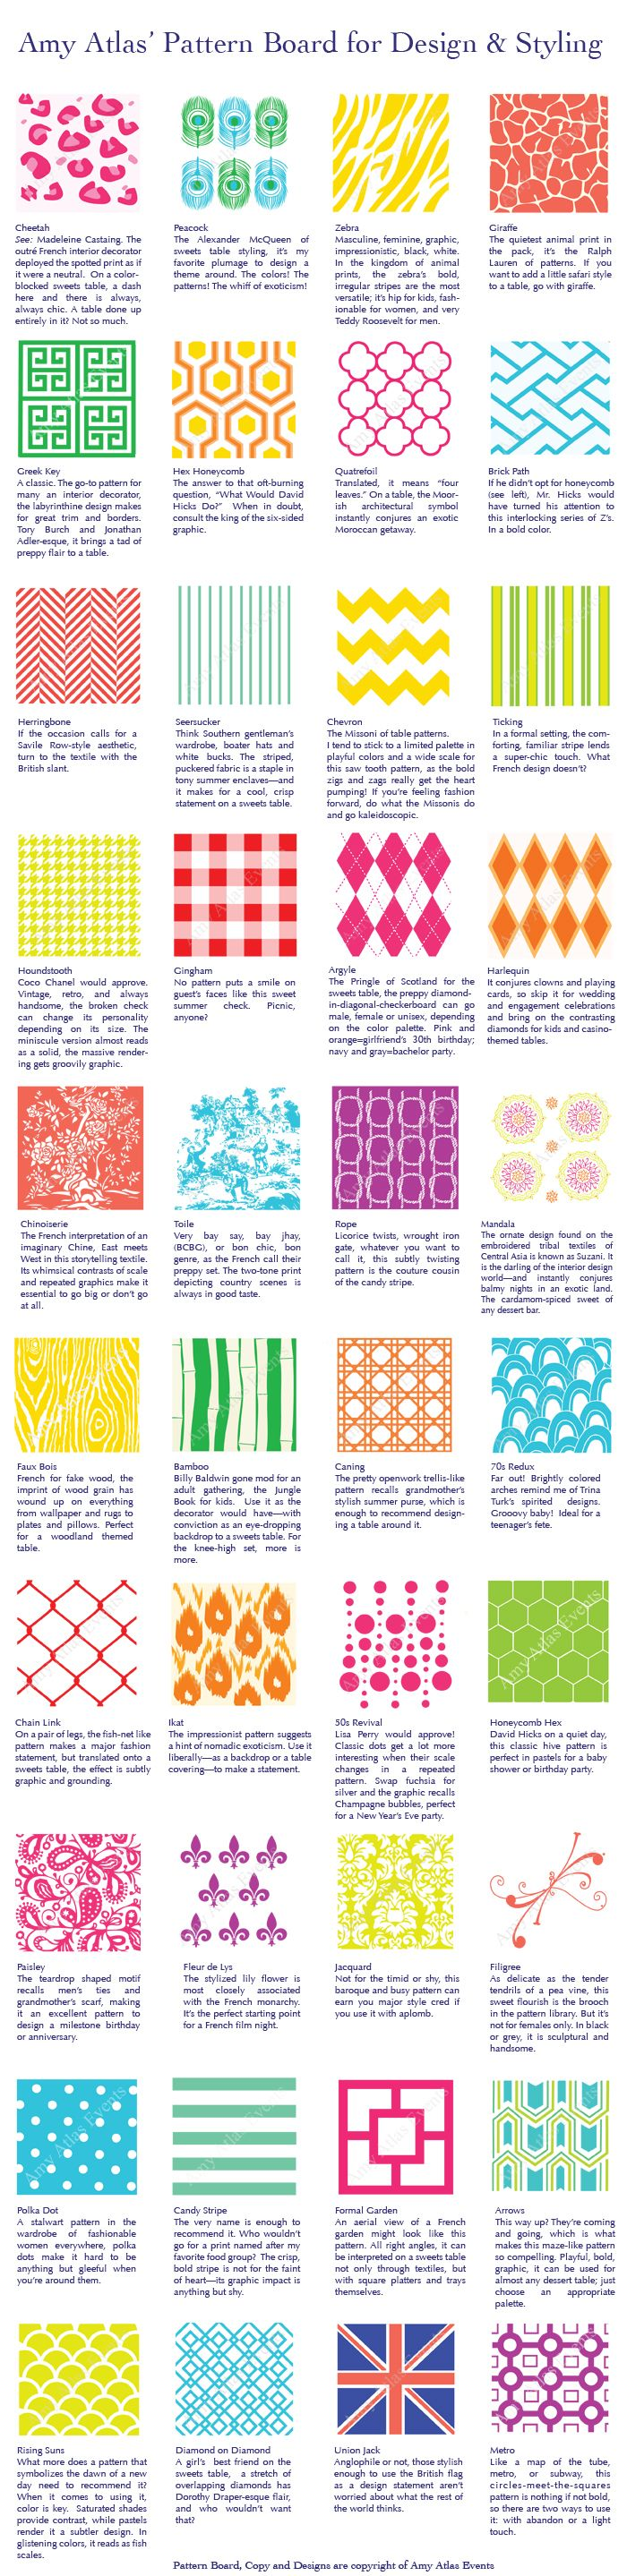 amy atlas pattern board for design styling